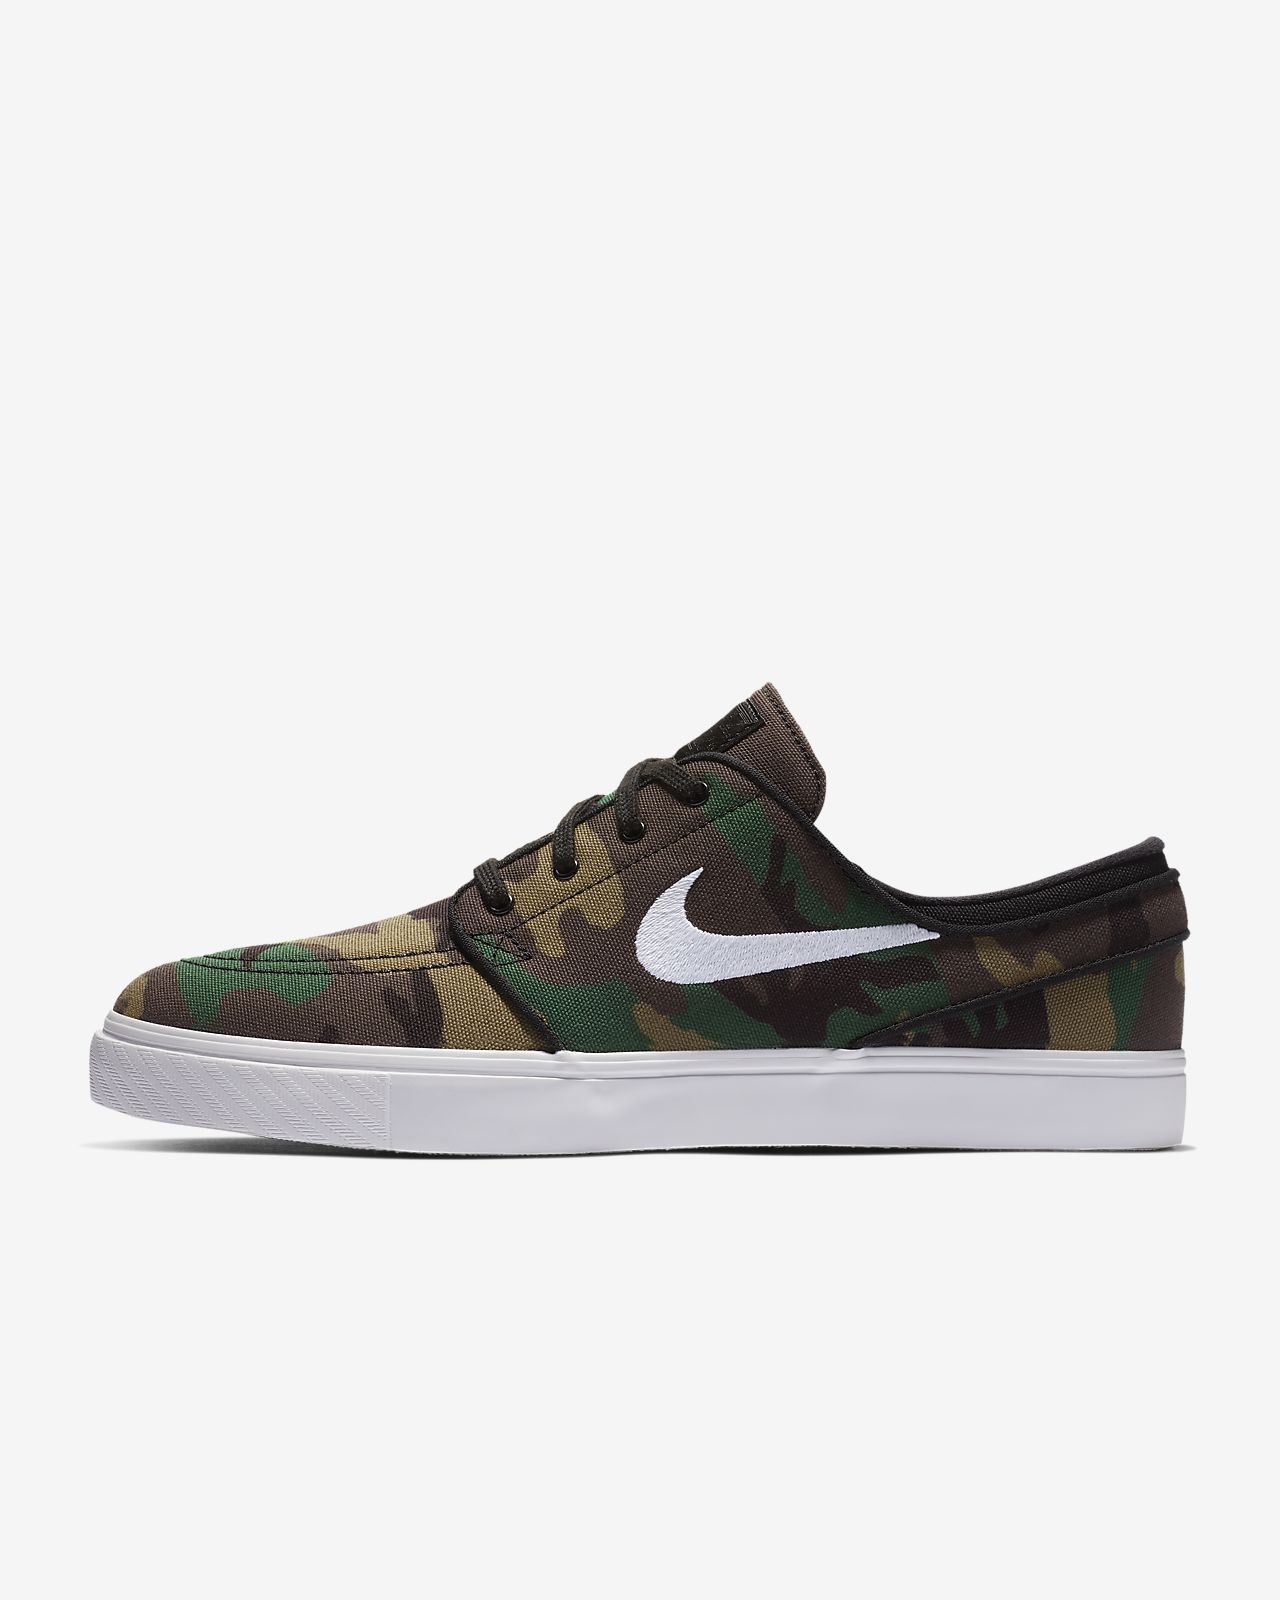 buy online 4df0a a55f1 ... Nike SB Zoom Stefan Janoski Canvas Men s Skate Shoe